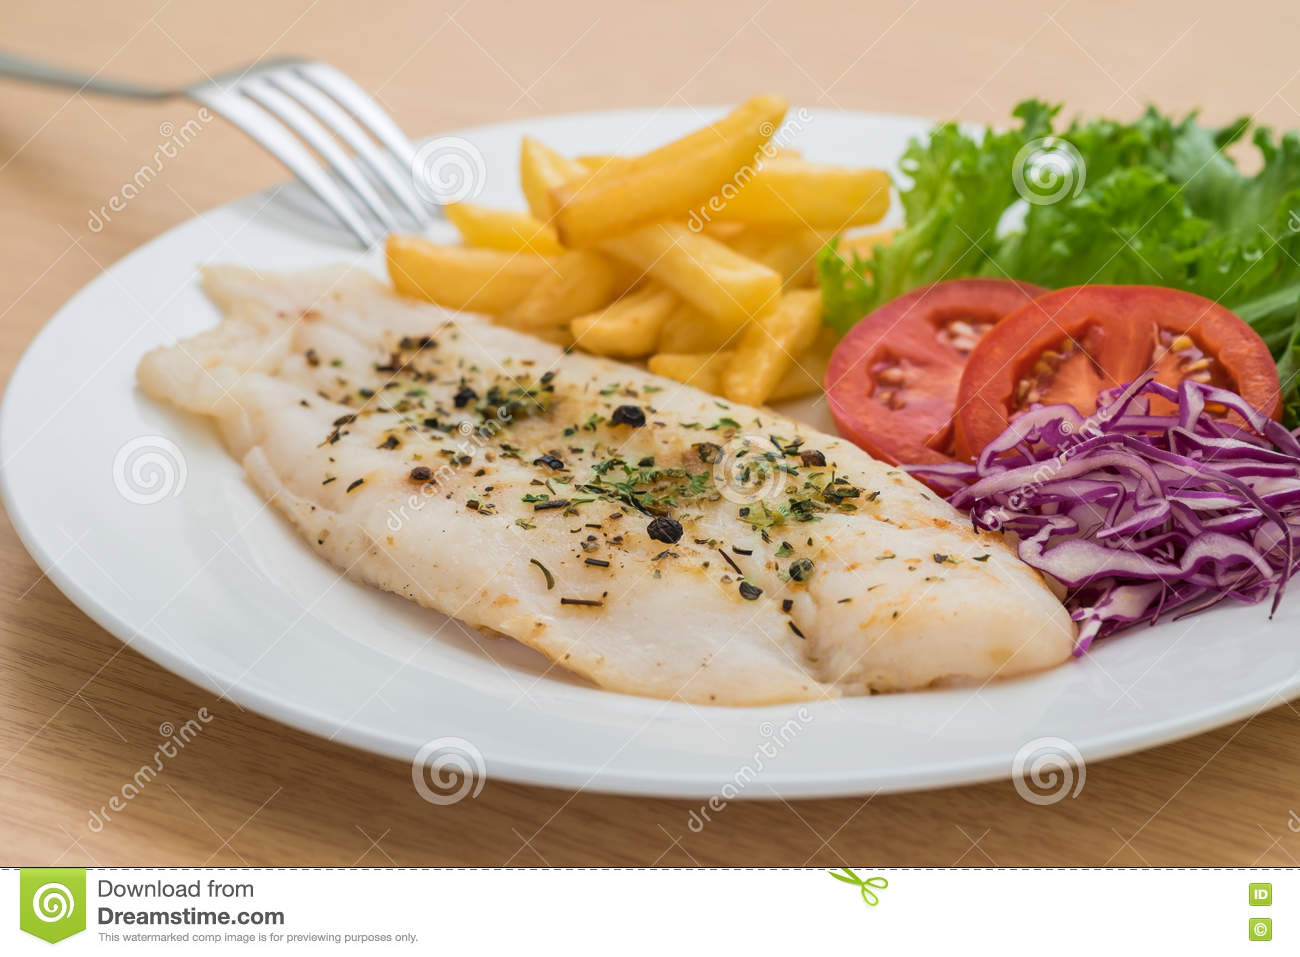 Grilled fish fillet steak with herb and french fries on for How to grill fish fillet